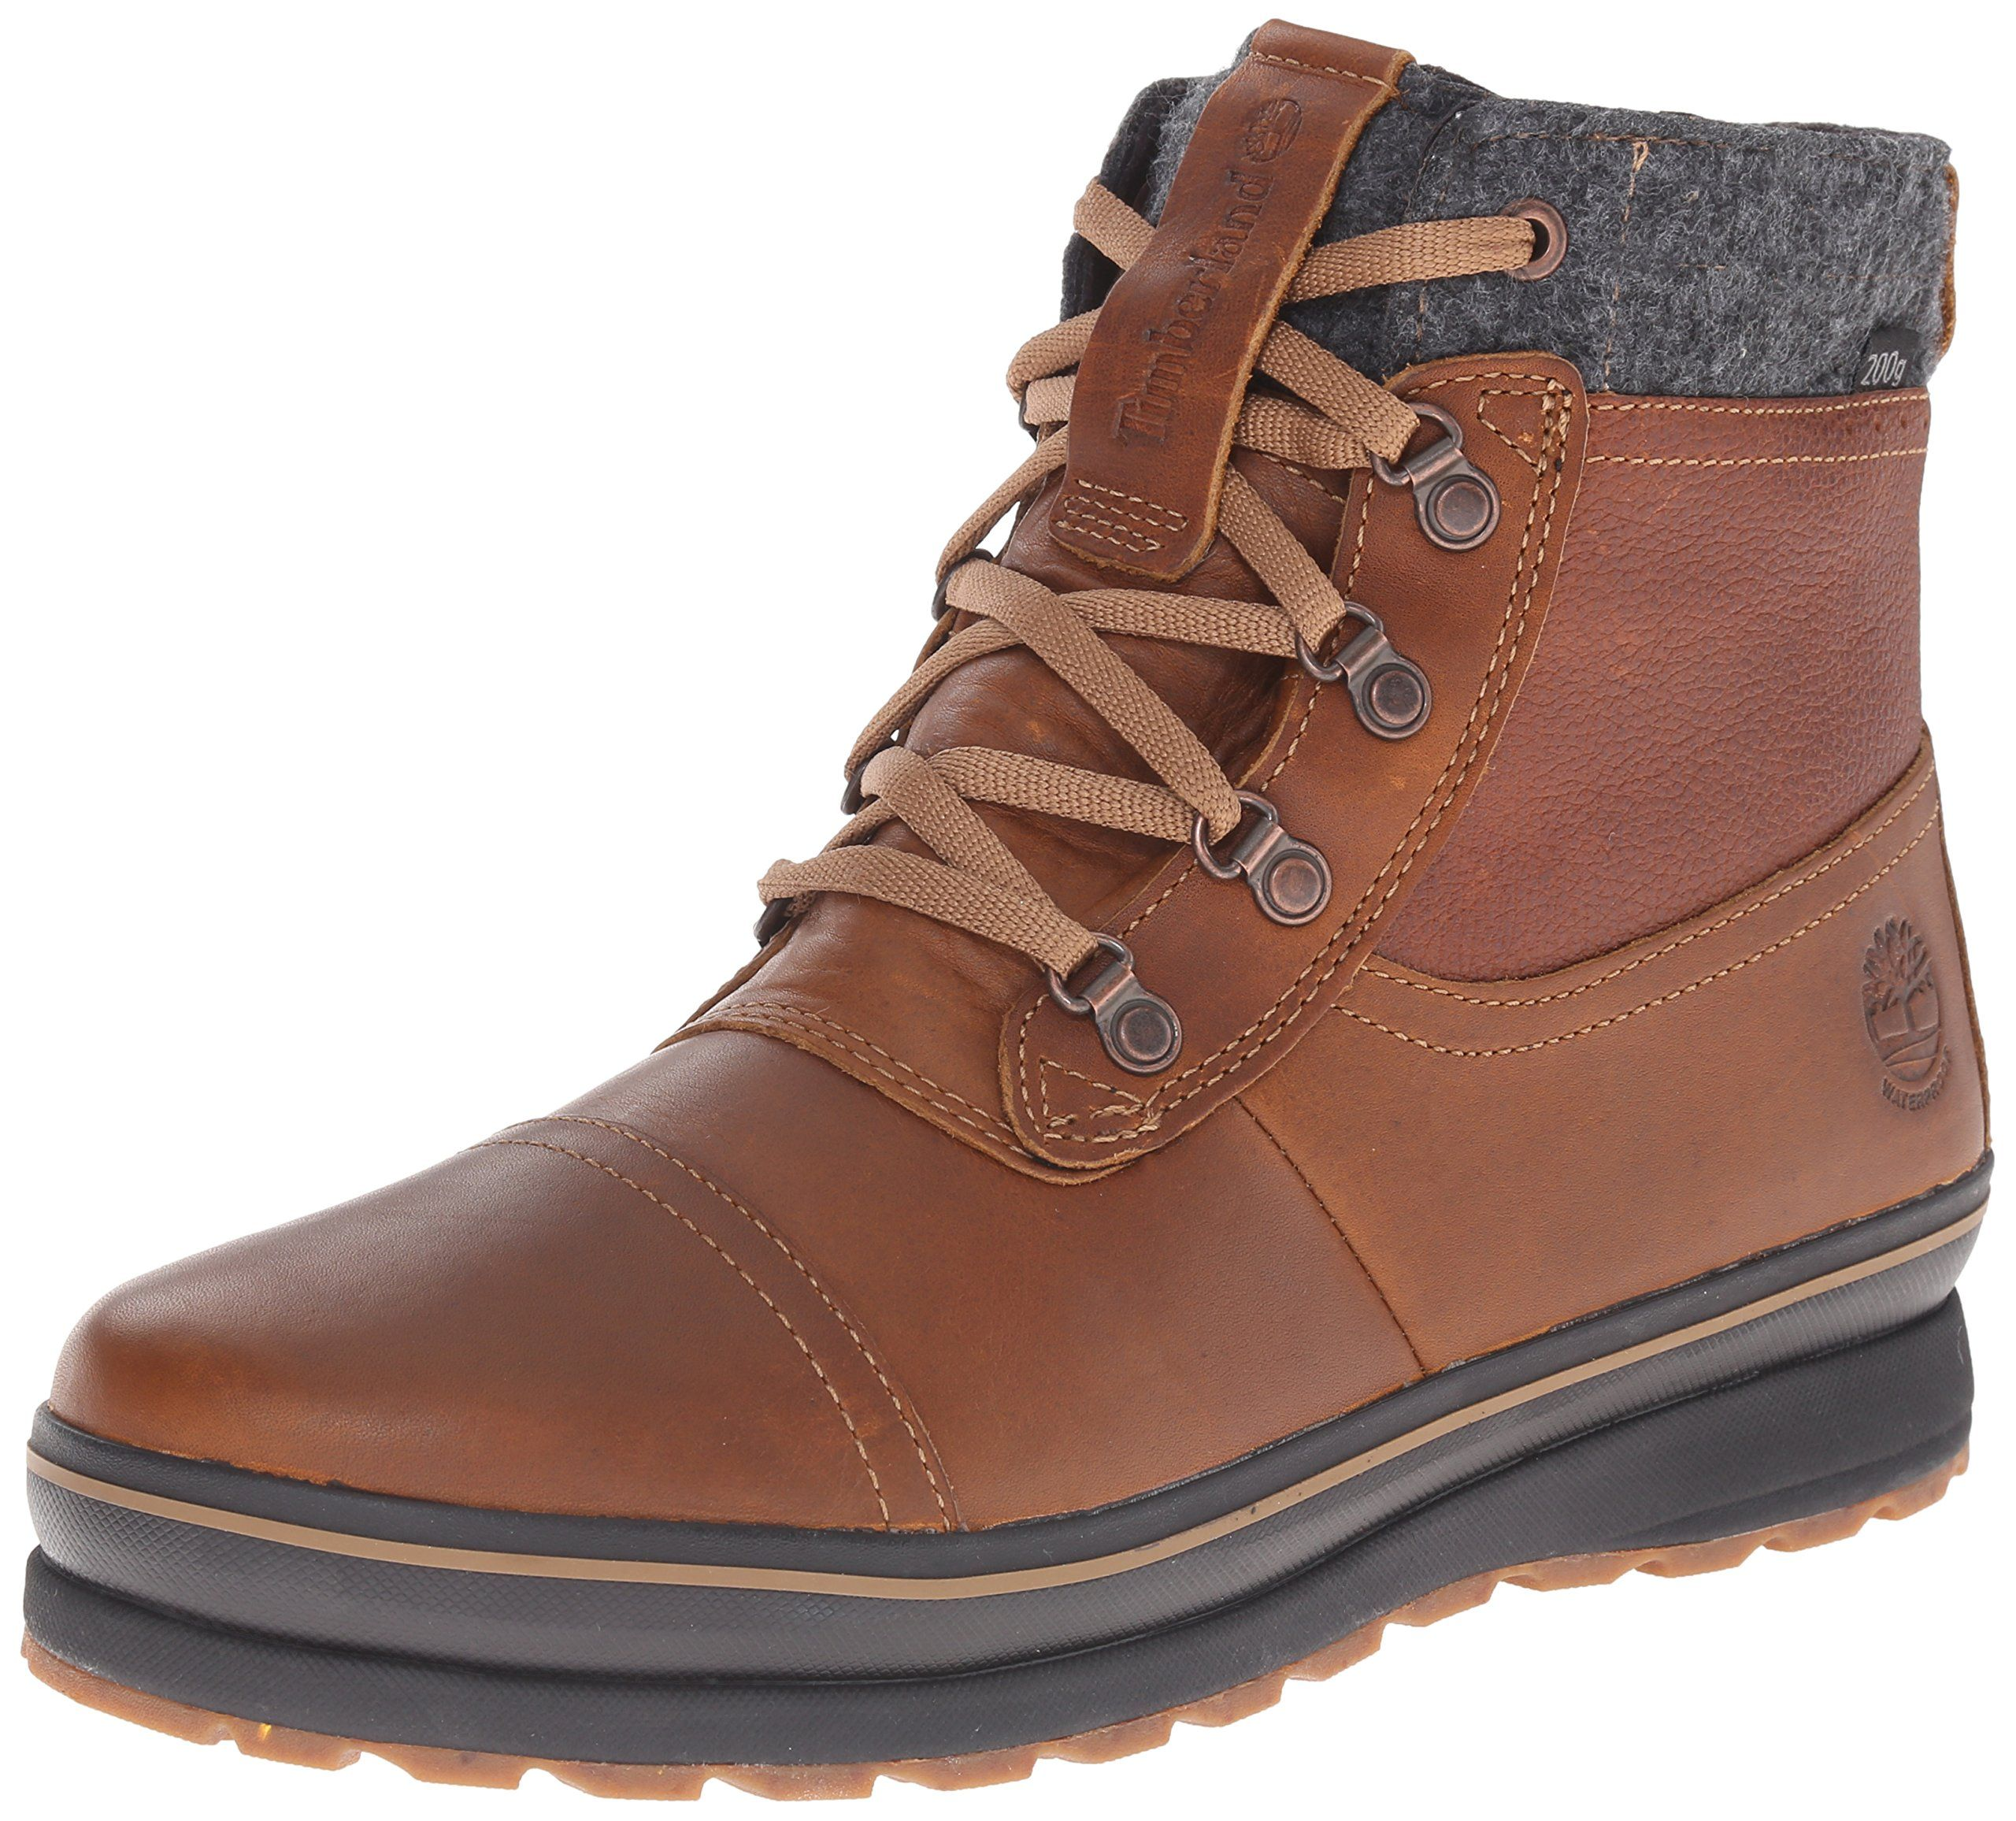 288d76fe Amazon.com: Timberland Men's Schazzberg Mid WP Insulated Winter Boot:  Clothing